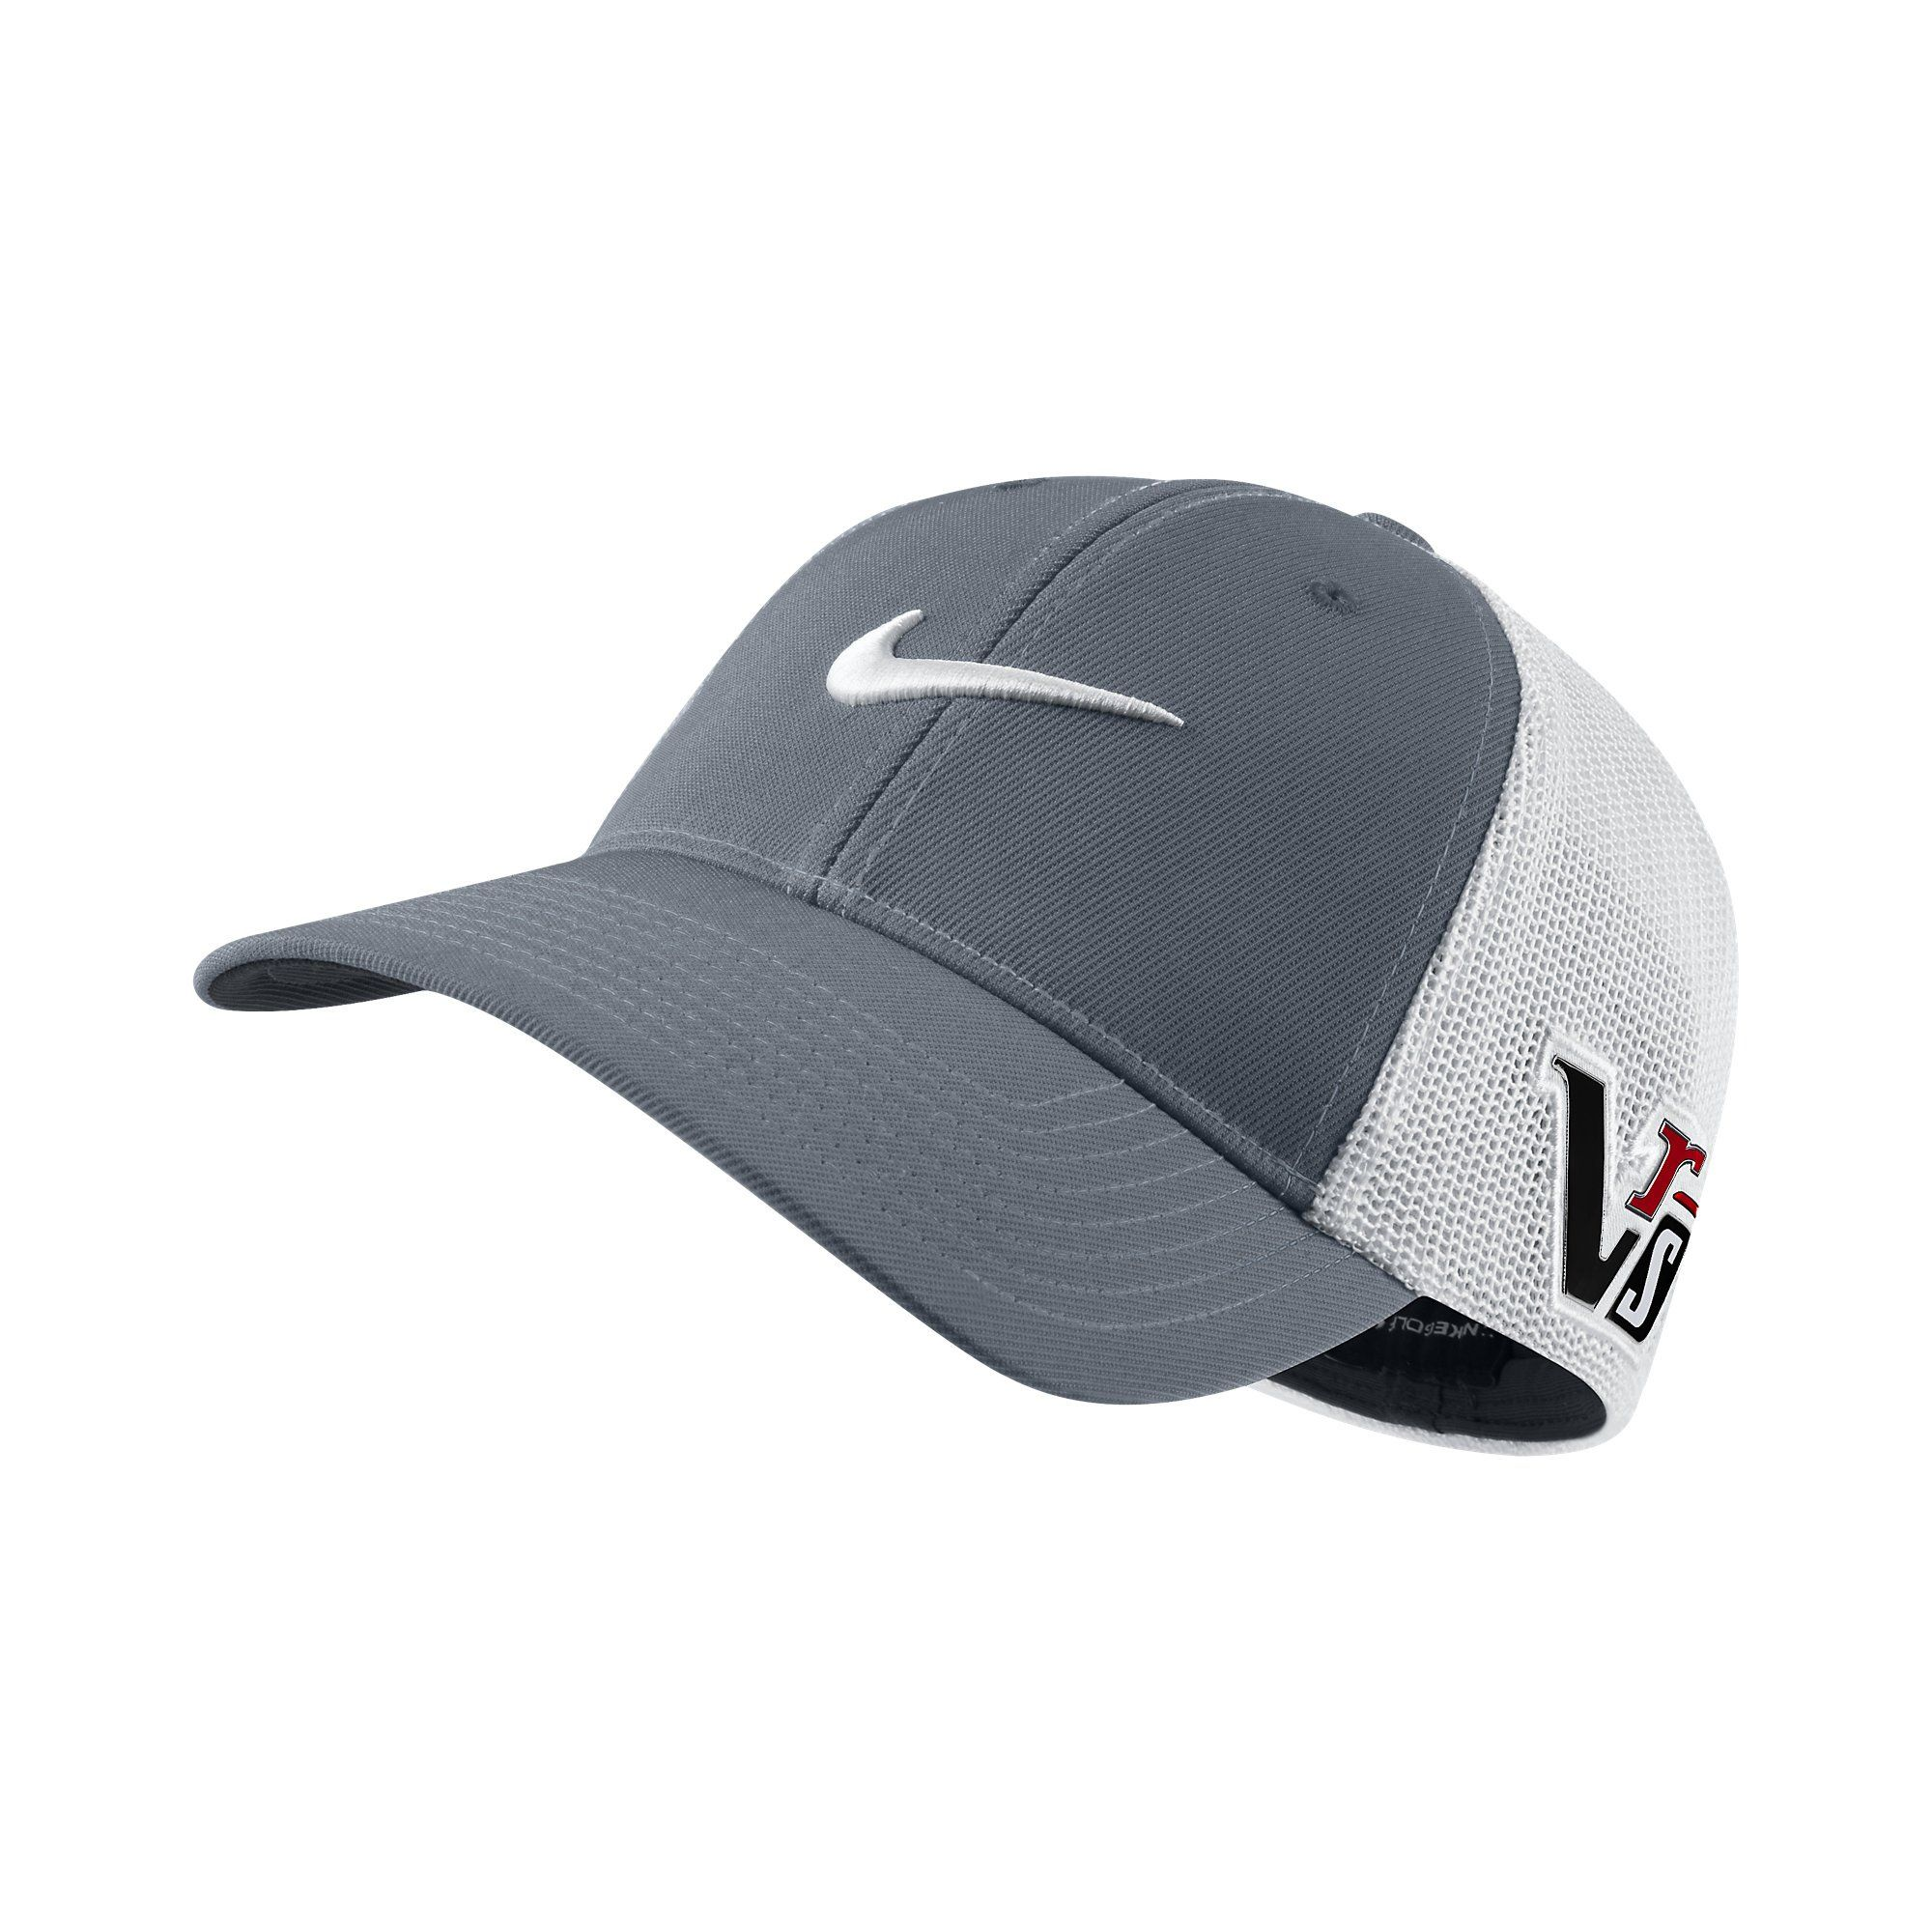 e727ade2609ed Amazon.com  Nike Men s Tour Flex Fit Golf Cap Hat